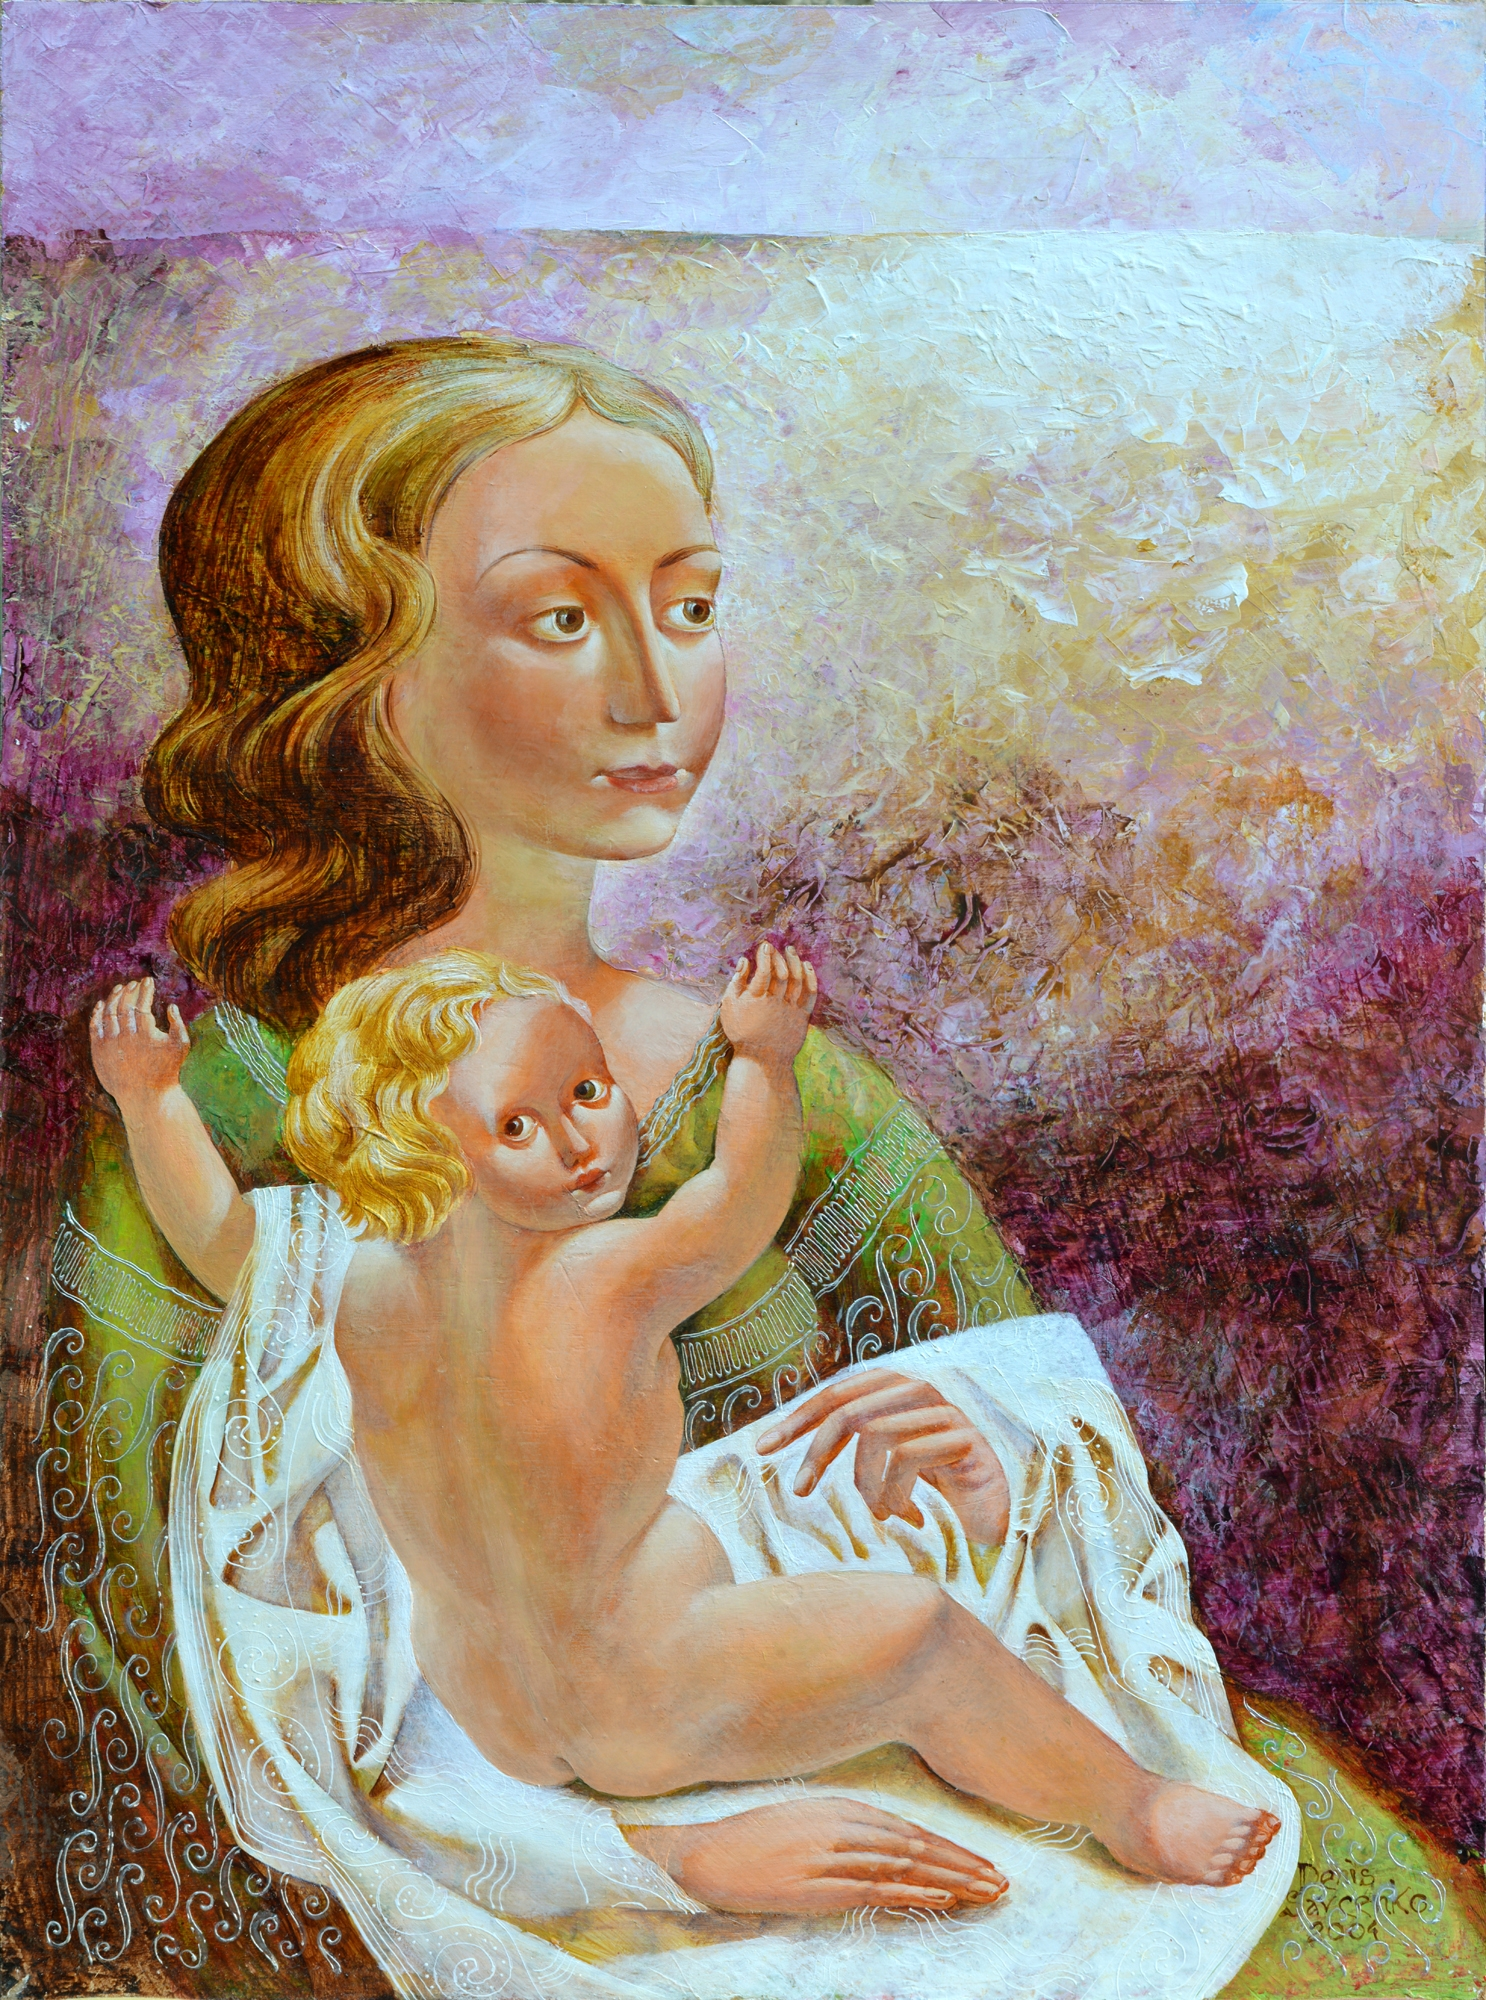 Denys Savchenko. Painting. Mother. Acrylic on wooden board. 56x40 cm.